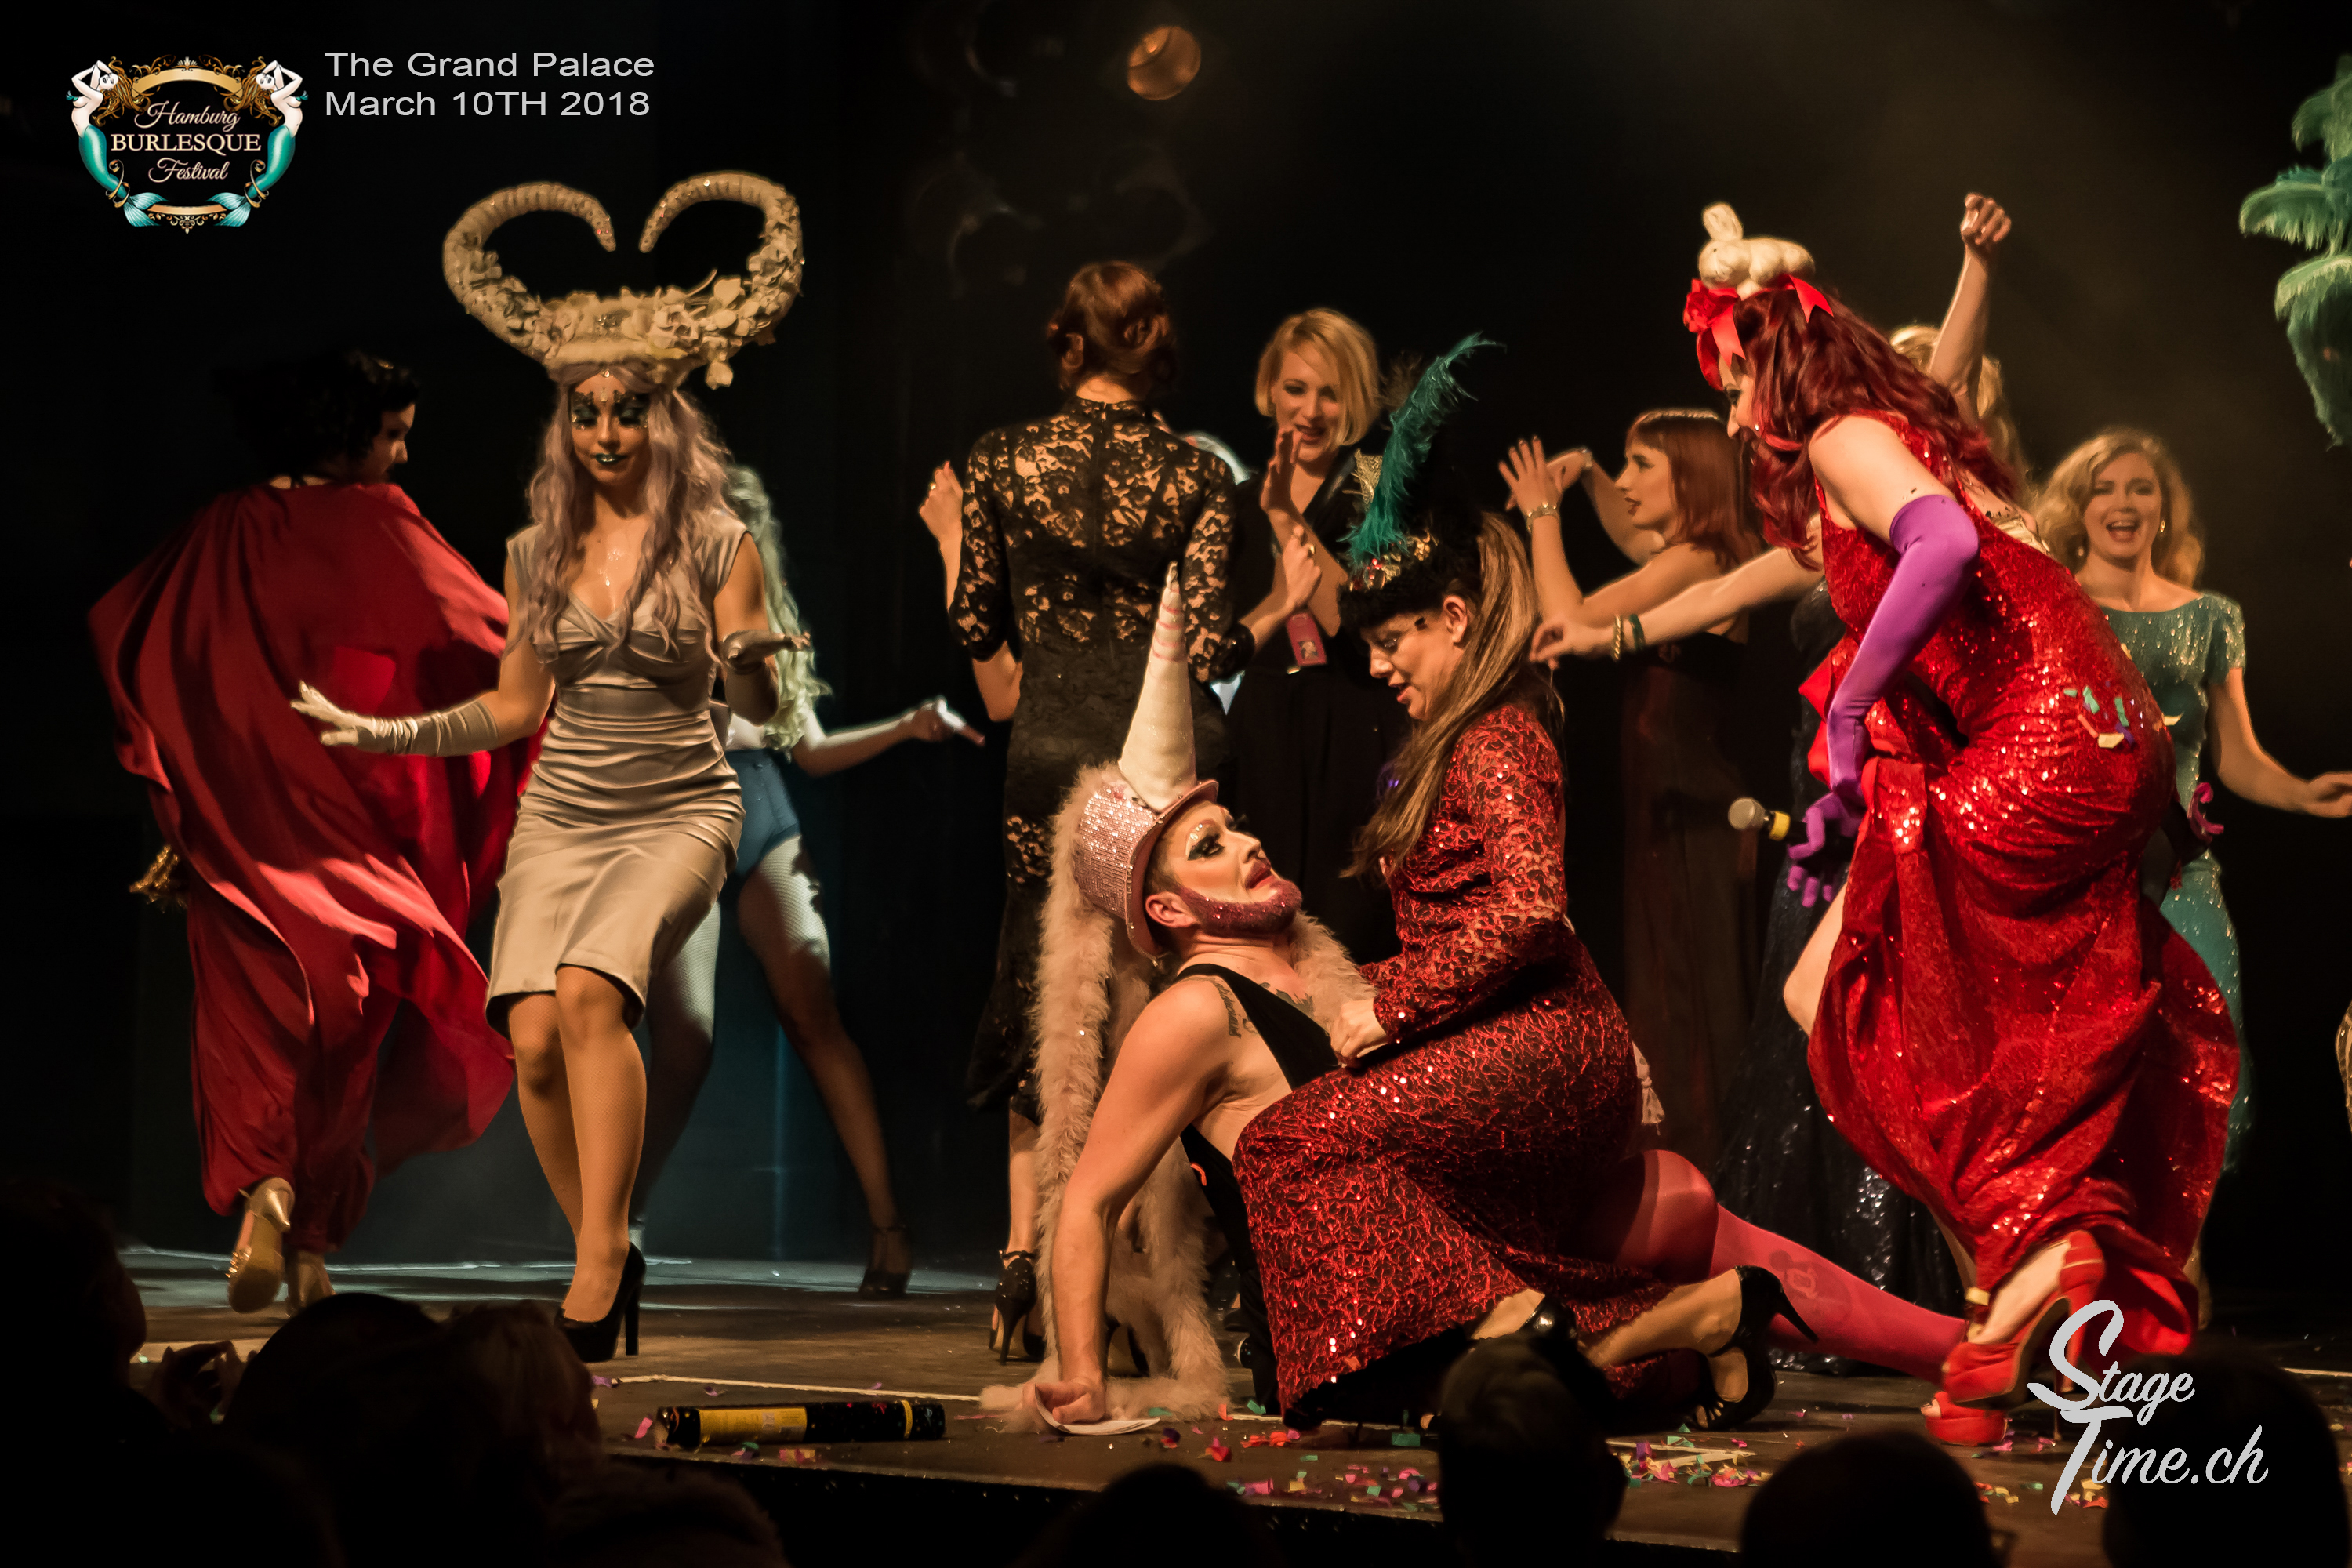 Hamburg_Burlesque_Festival_The_Grand_Palace__📷_Christoph_Gurtner_I_stagetime.ch-153